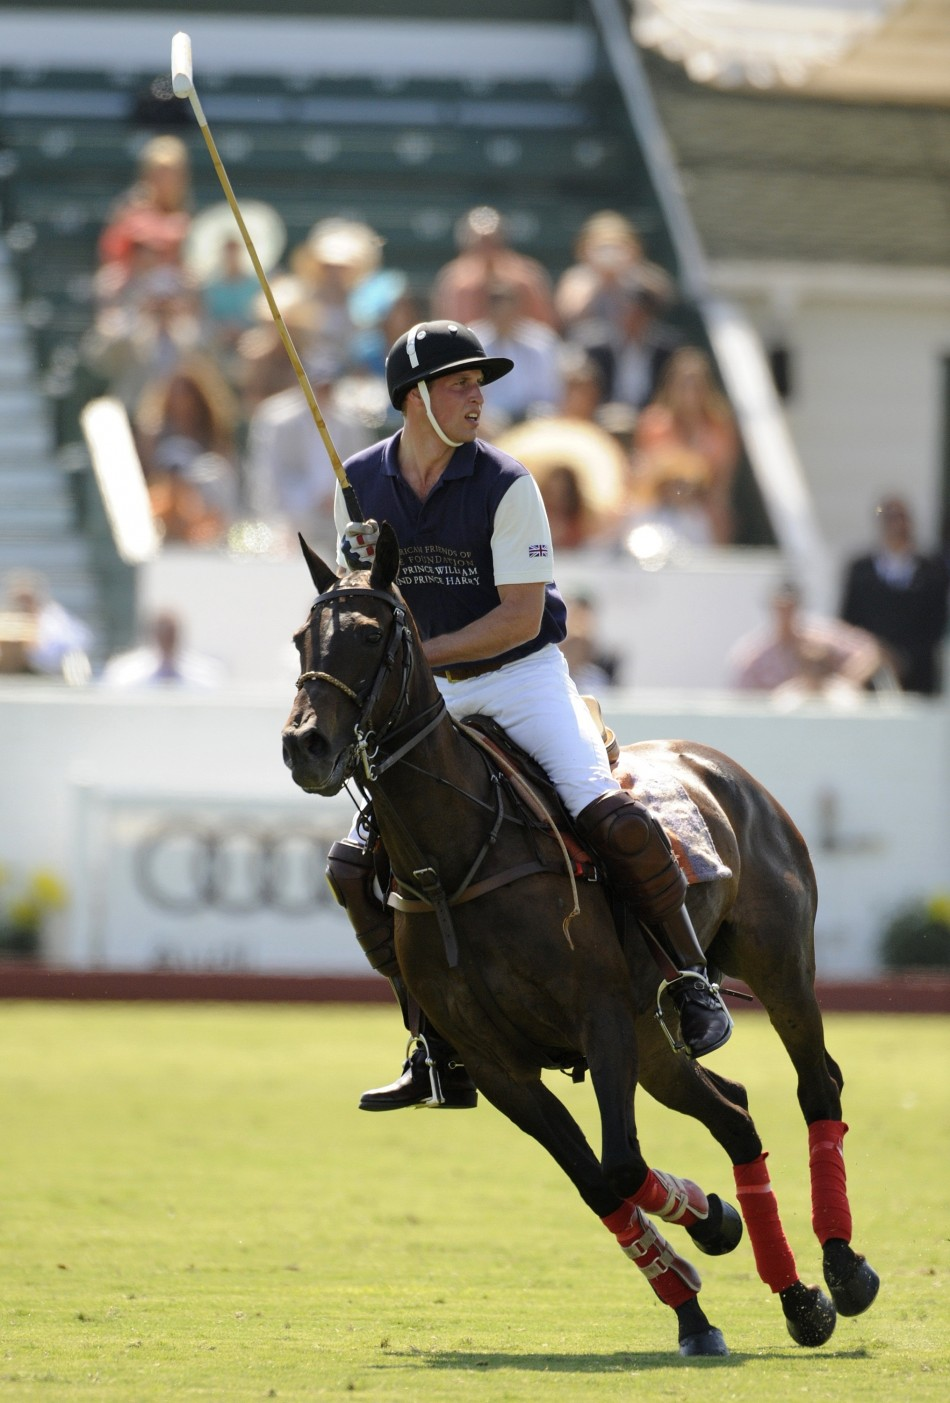 Prince William plays in a polo match at the Santa Barbara Polo and Racquet Club for a charity event held in support of the American Friends of The Foundation of Prince William and Prince Harry in Santa Barbara, California July 9, 2011